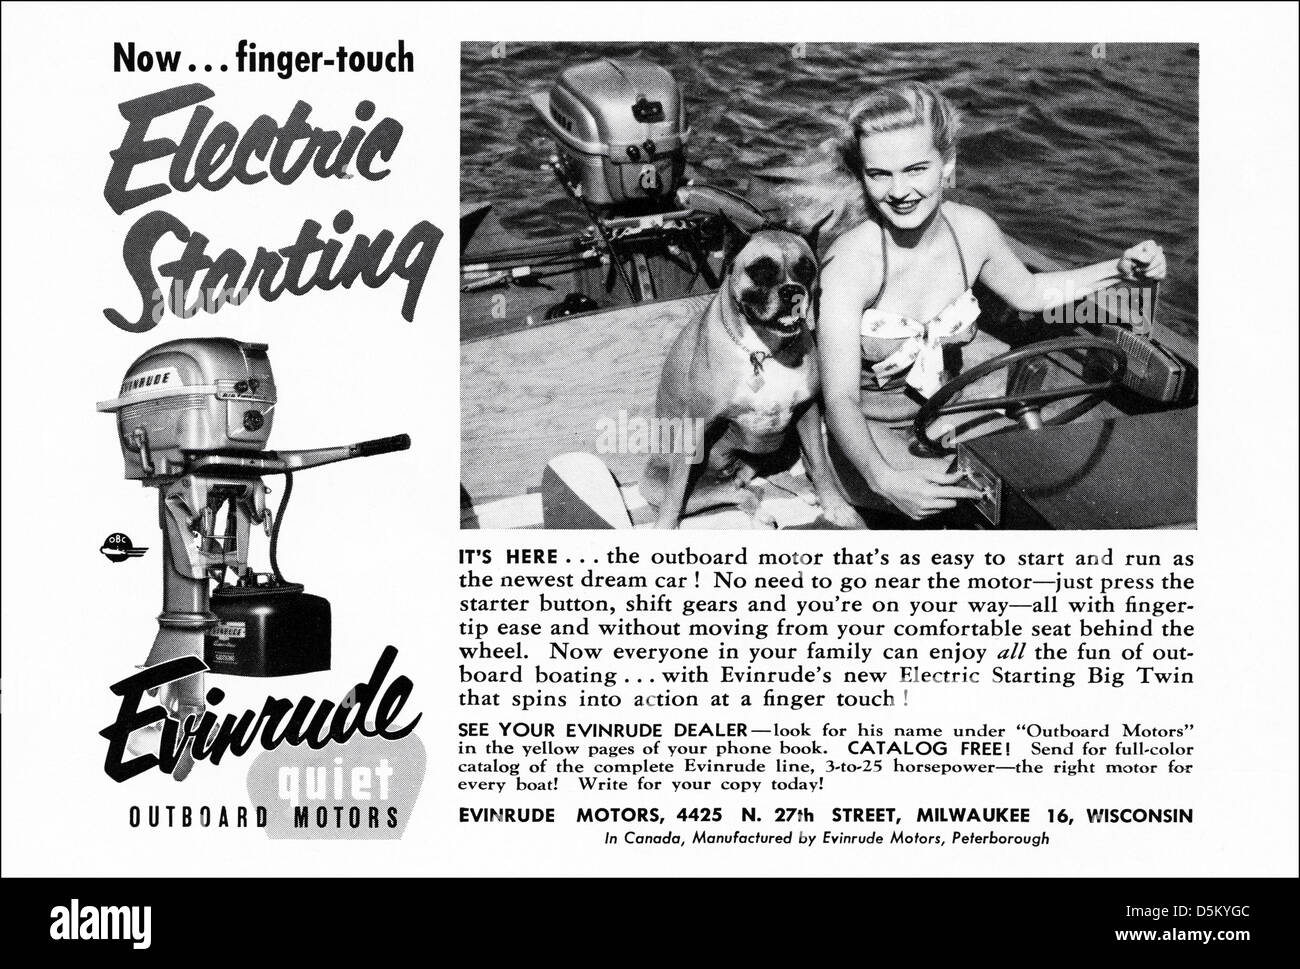 Vintage Outboard Motor Stock Photos & Vintage Outboard Motor Stock